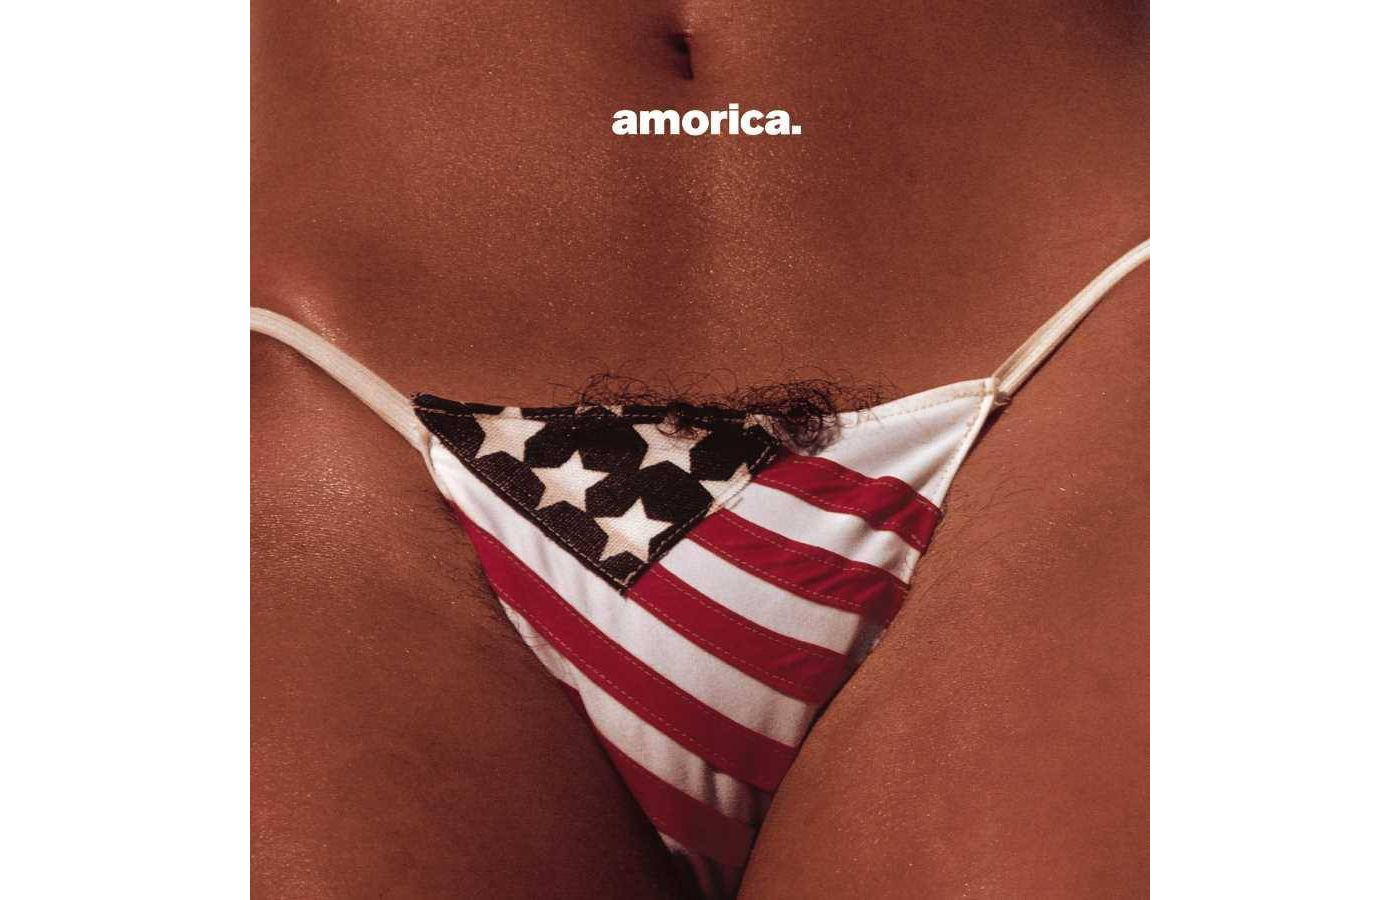 Happy Birthday Amorica!